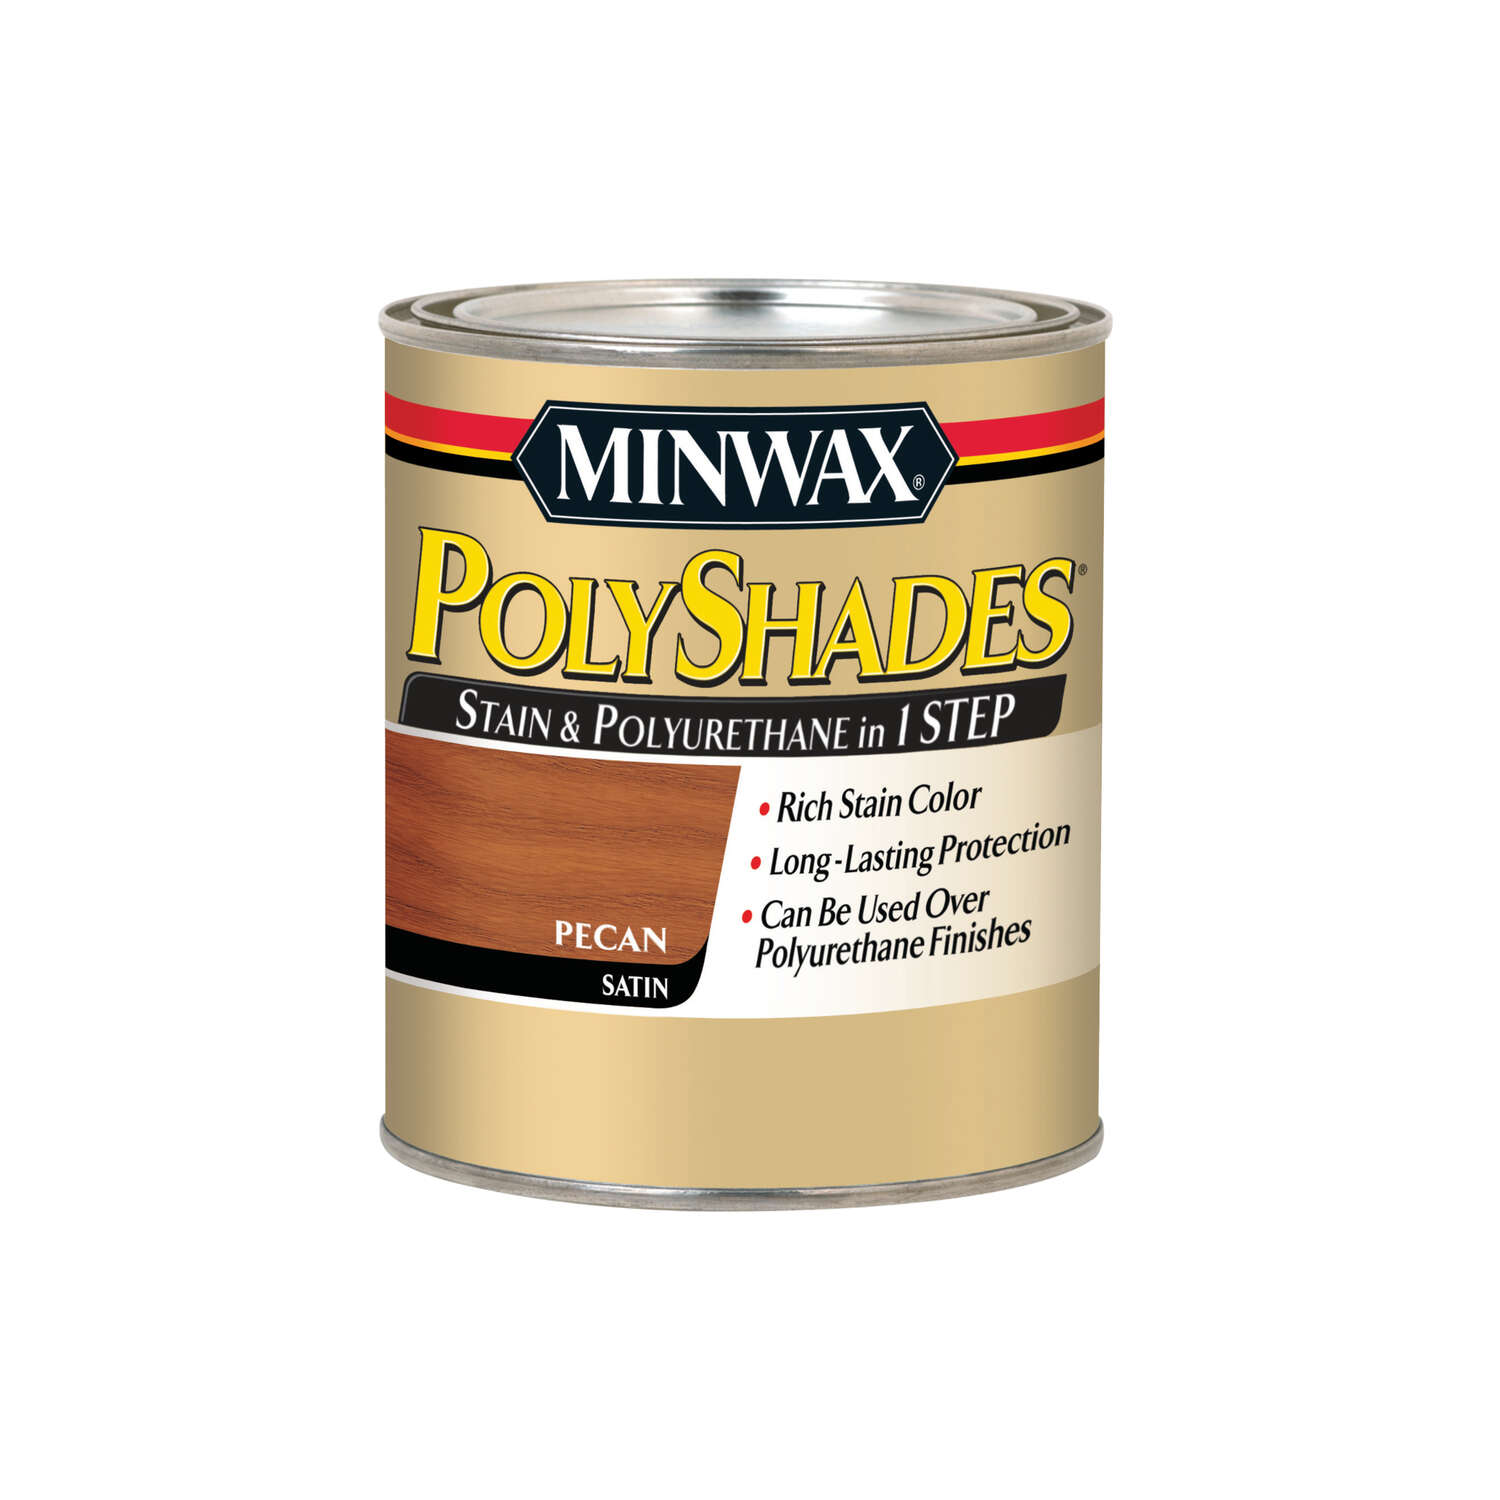 Minwax  PolyShades  Semi-Transparent  Satin  Pecan  Oil-Based  Stain  1 qt.